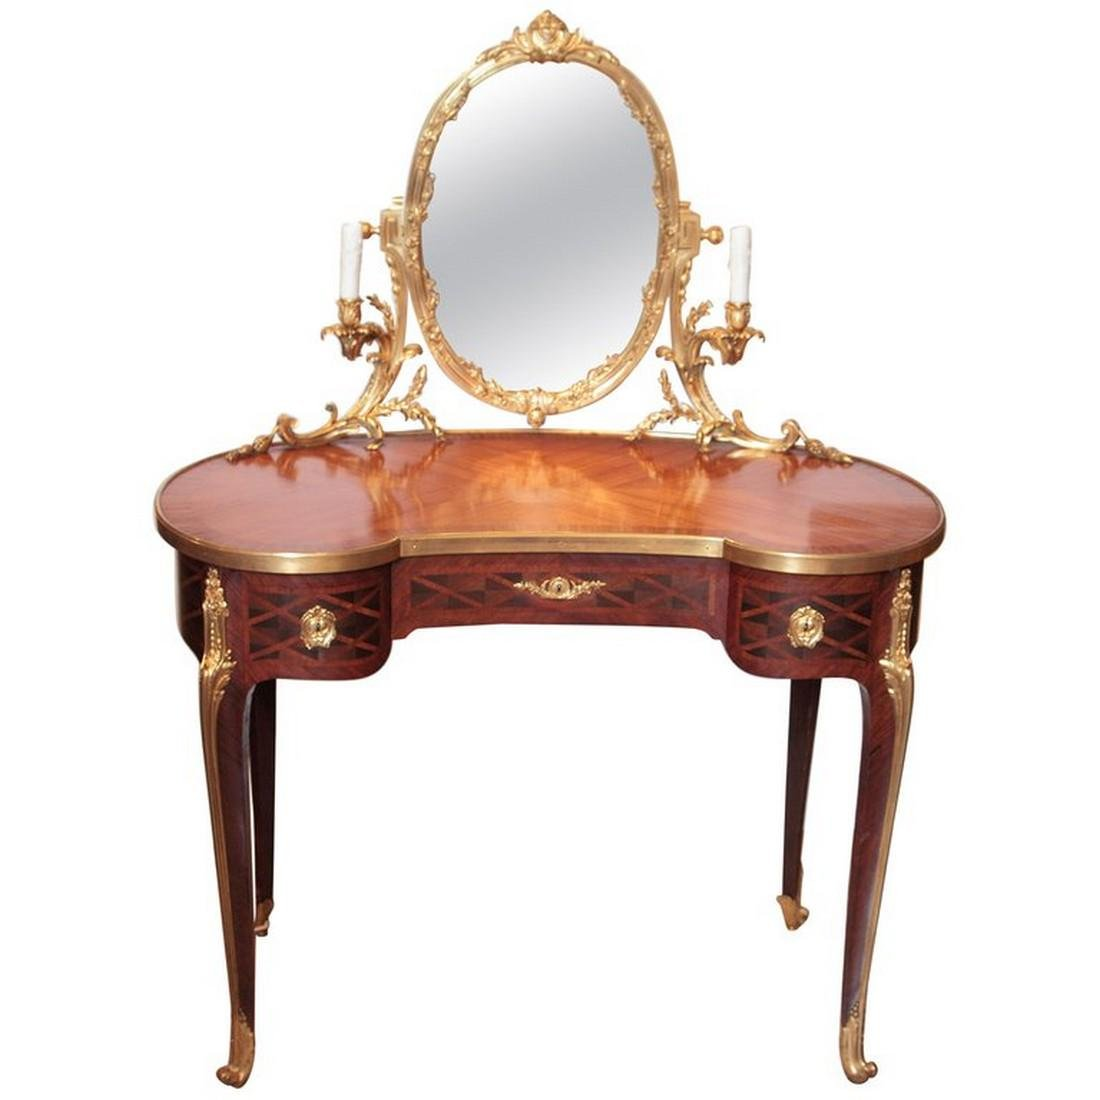 Magnificent French 19th century French Louis XV